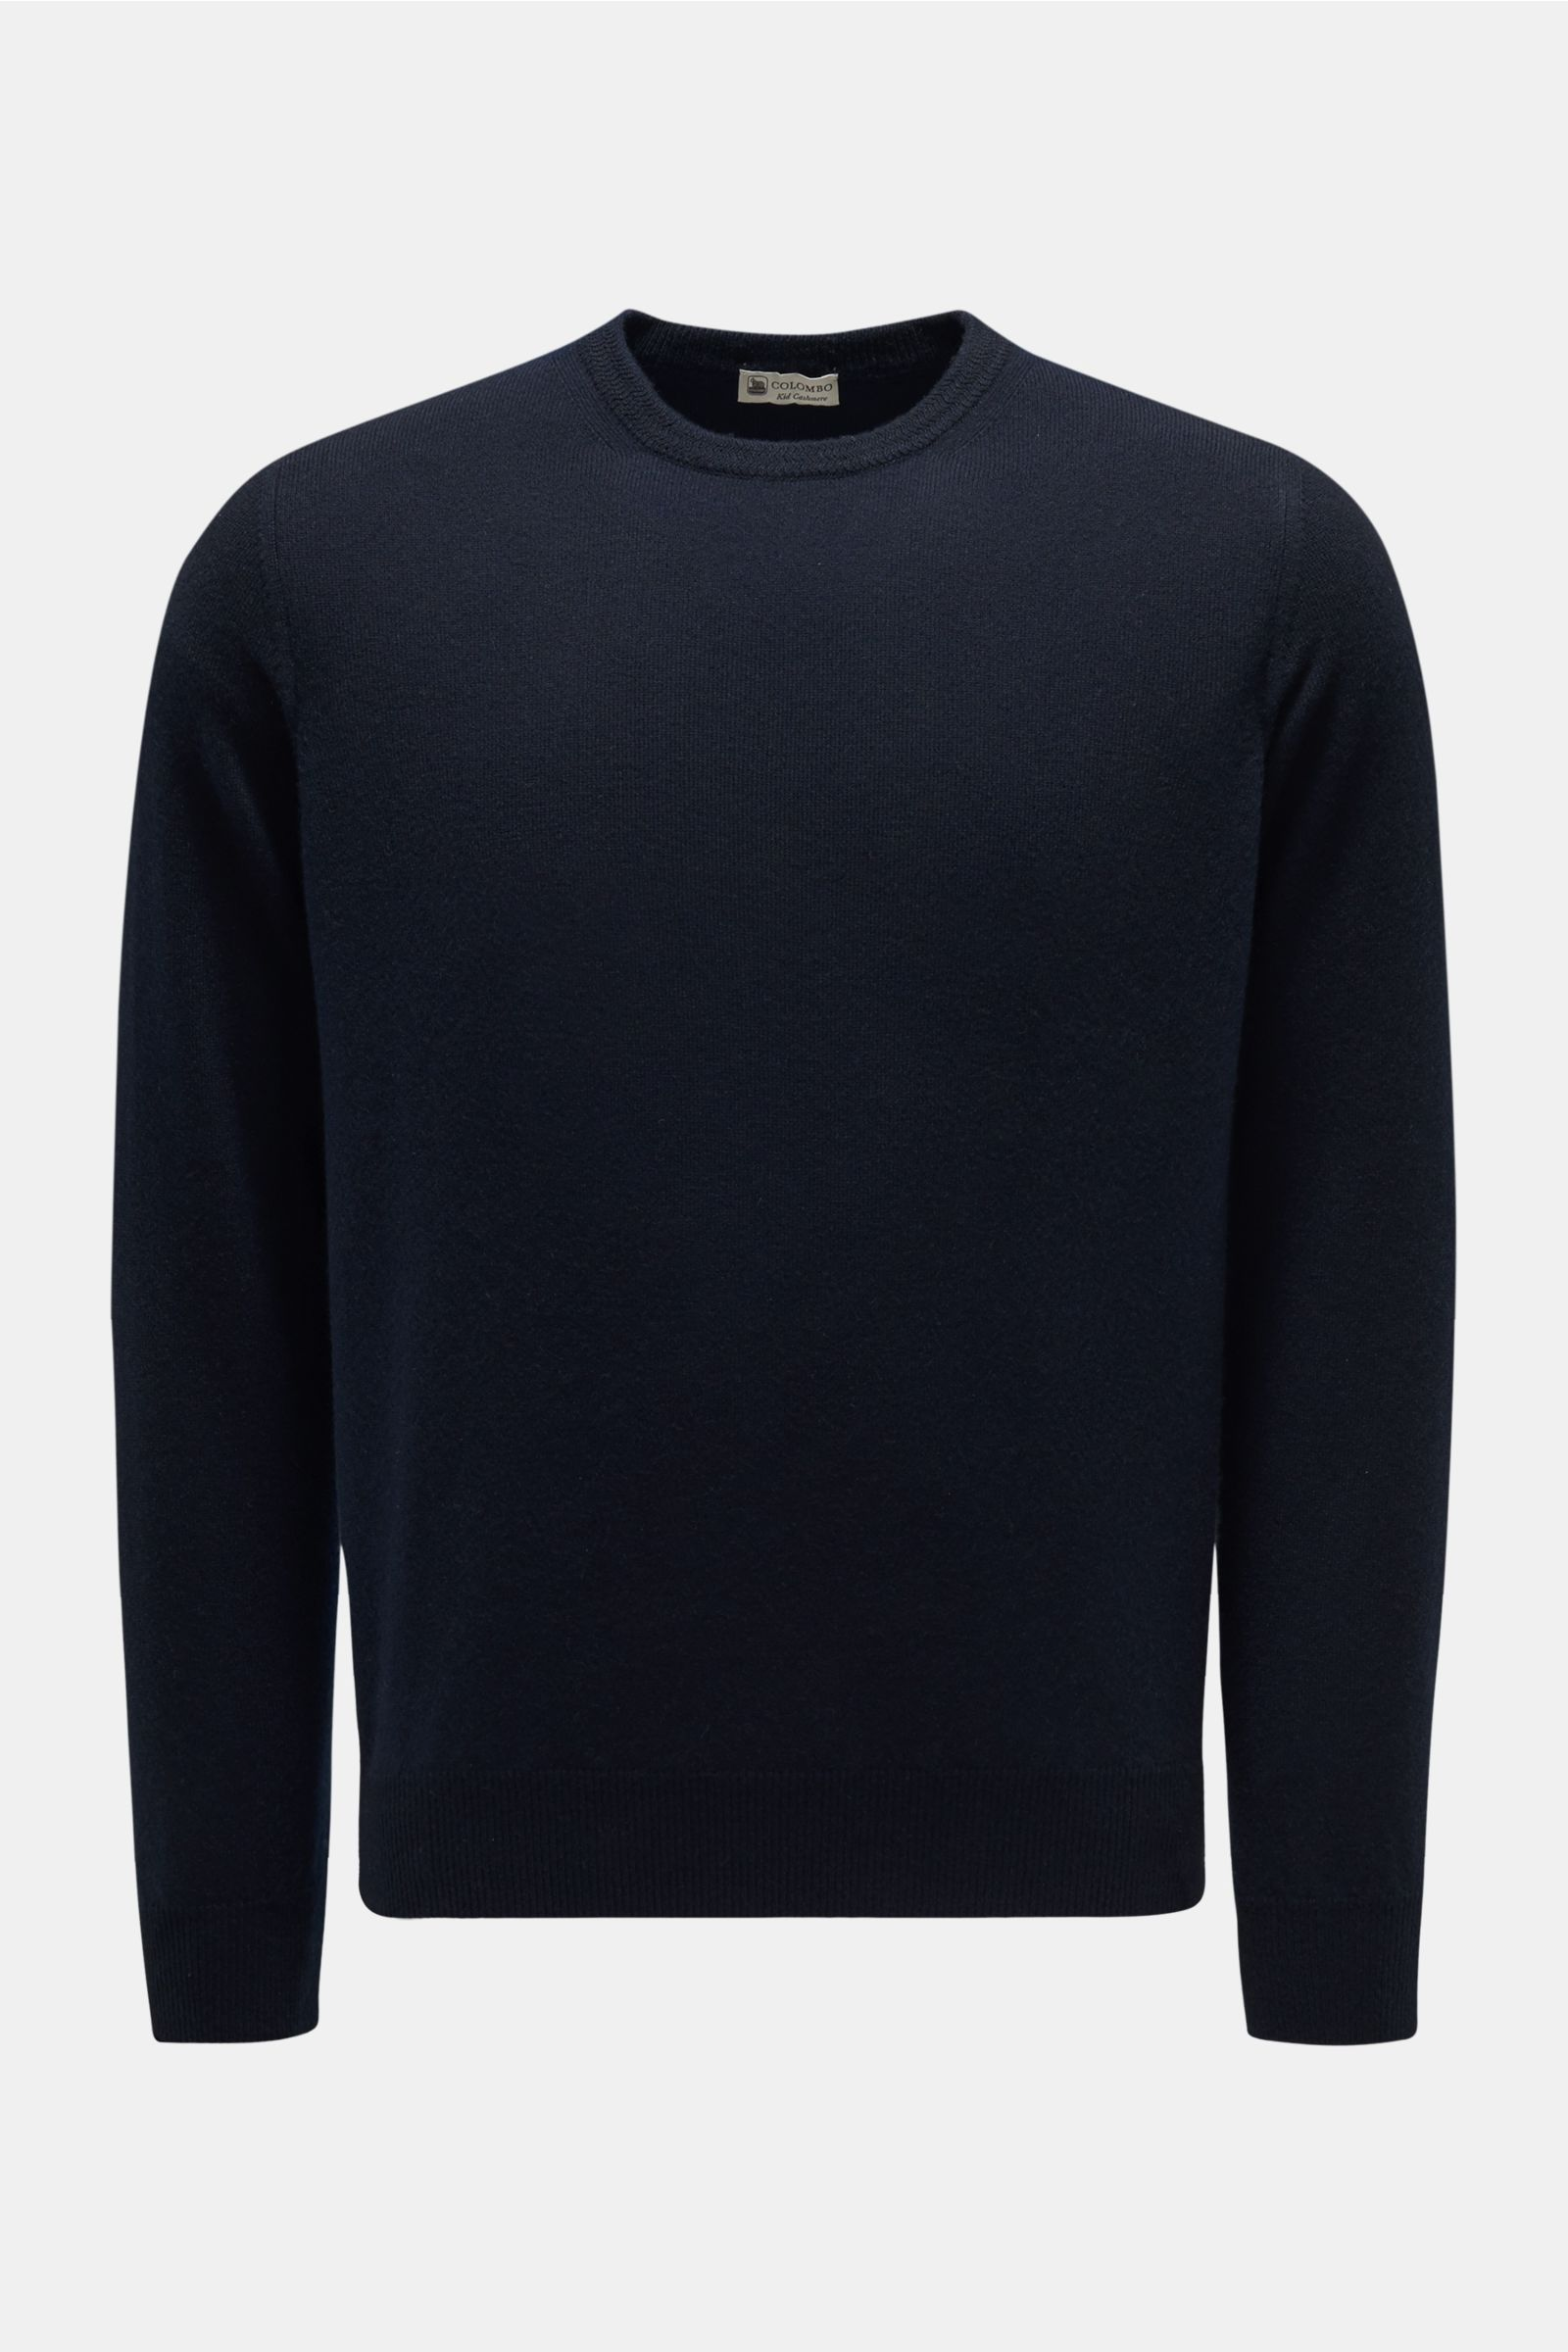 Baby-Cashmere R-Neck Pullover navy